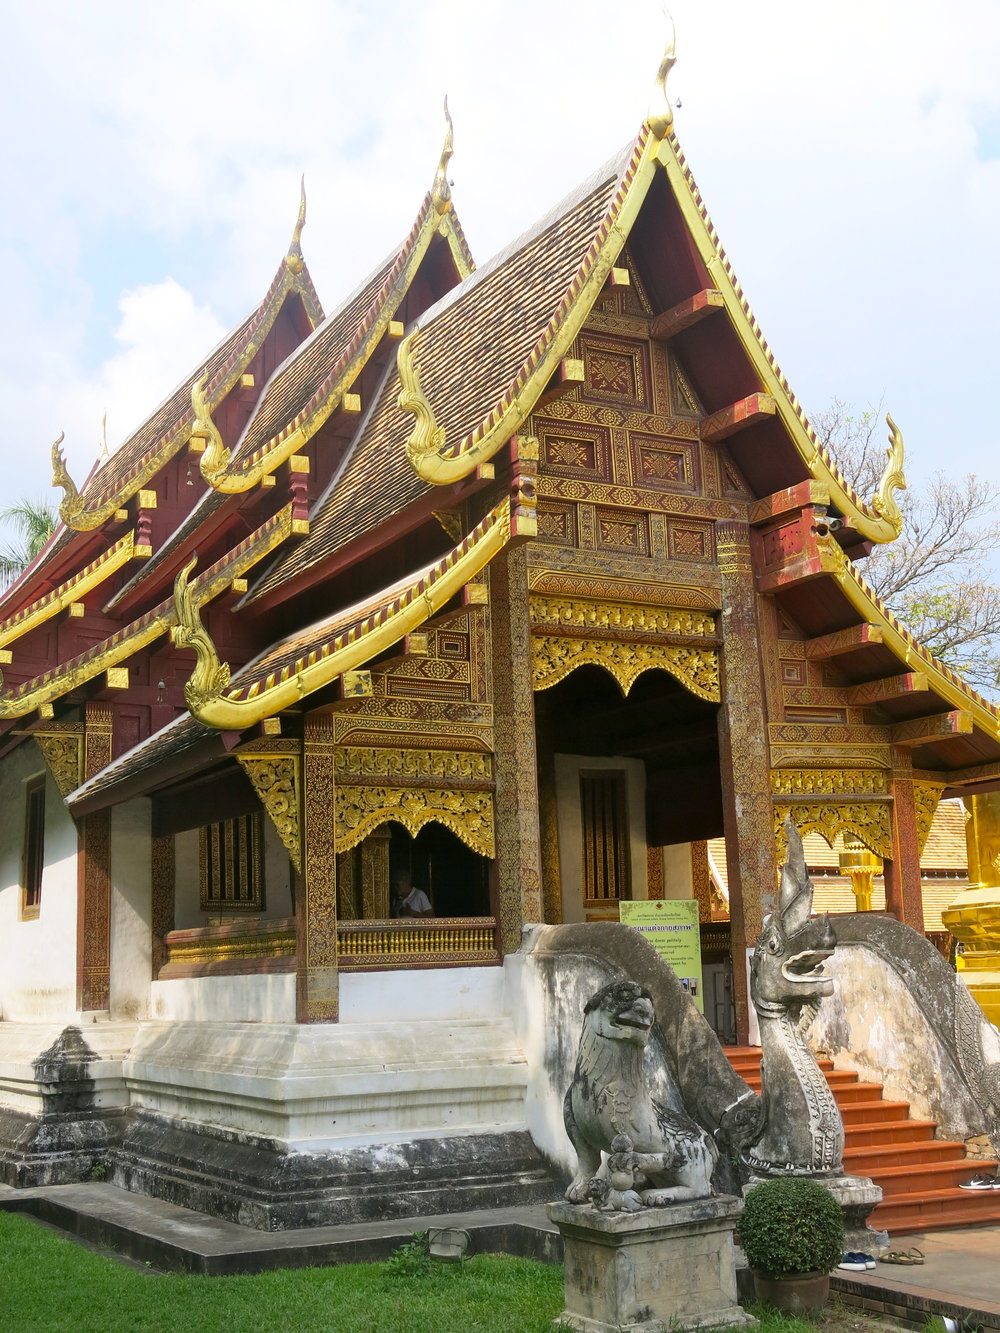 One of the temple of the Wat Phra Sing complex